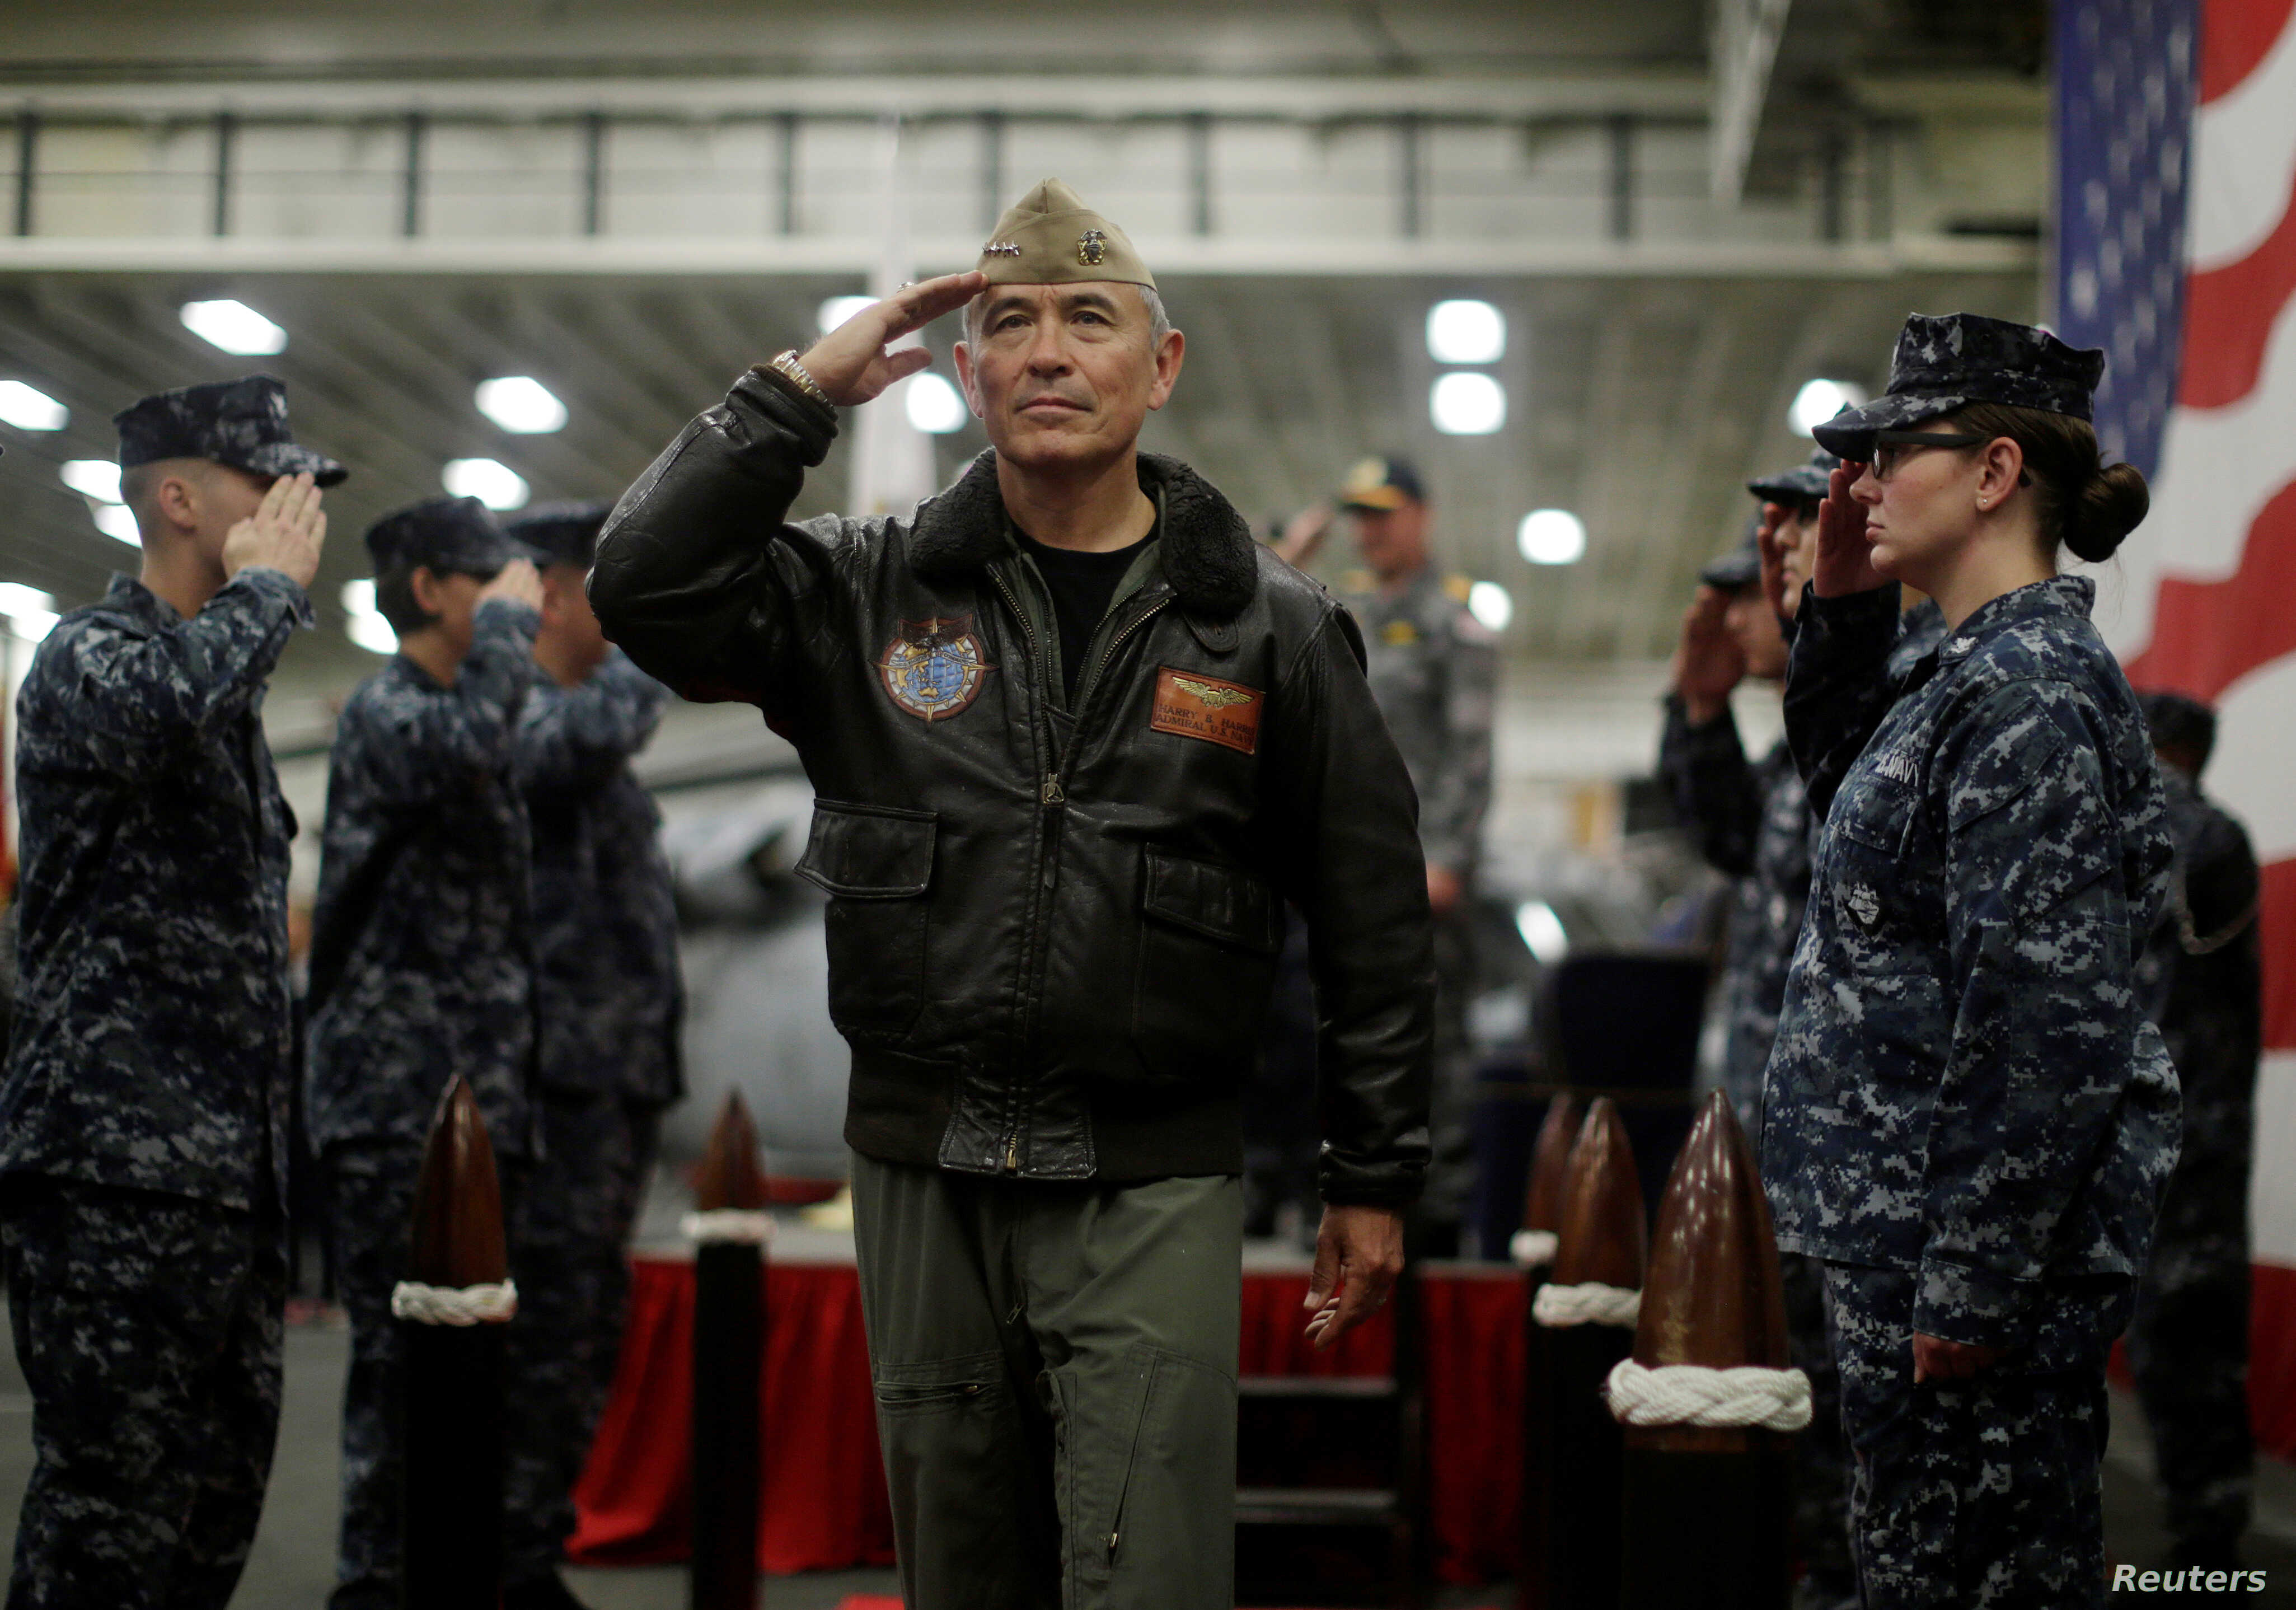 U.S. Navy Admiral Harry Harris, Commander of the U.S. Pacific Command, salutes at a ceremony marking the start of Talisman Saber 2017, a biennial joint military exercise between the United States and Australia,  June 29, 2017.